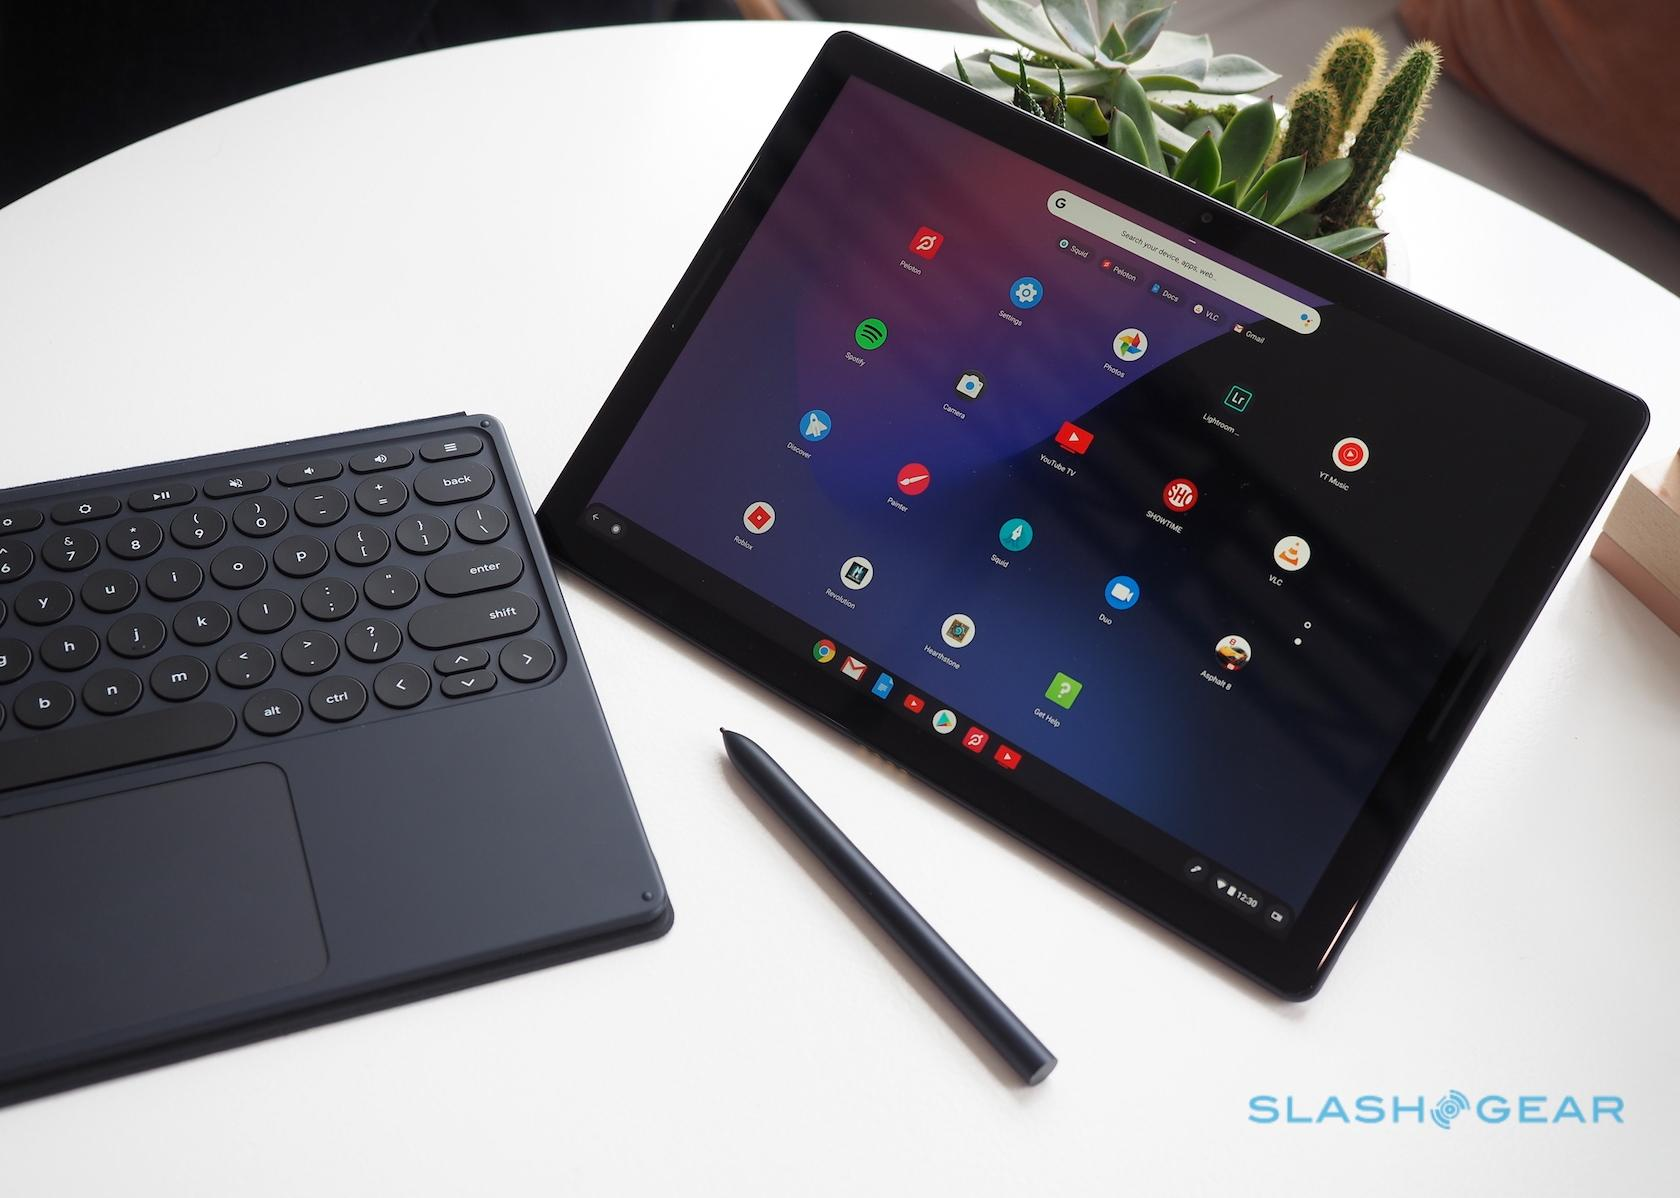 iPadOS shows where Android tablets went wrong - SlashGear